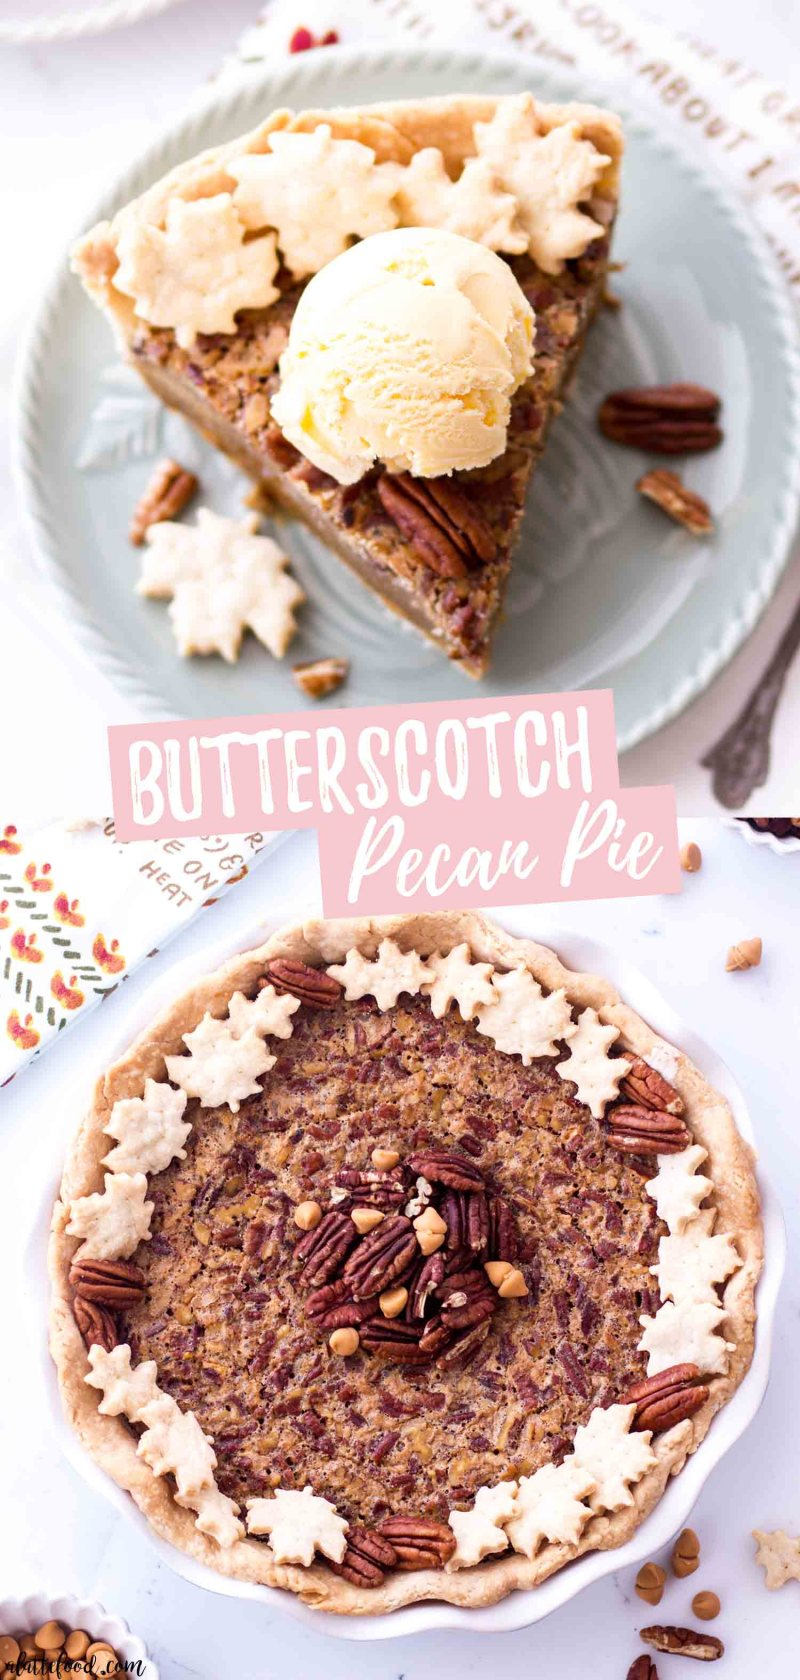 This homemade Butterscotch Pecan Pie is made without corn syrup